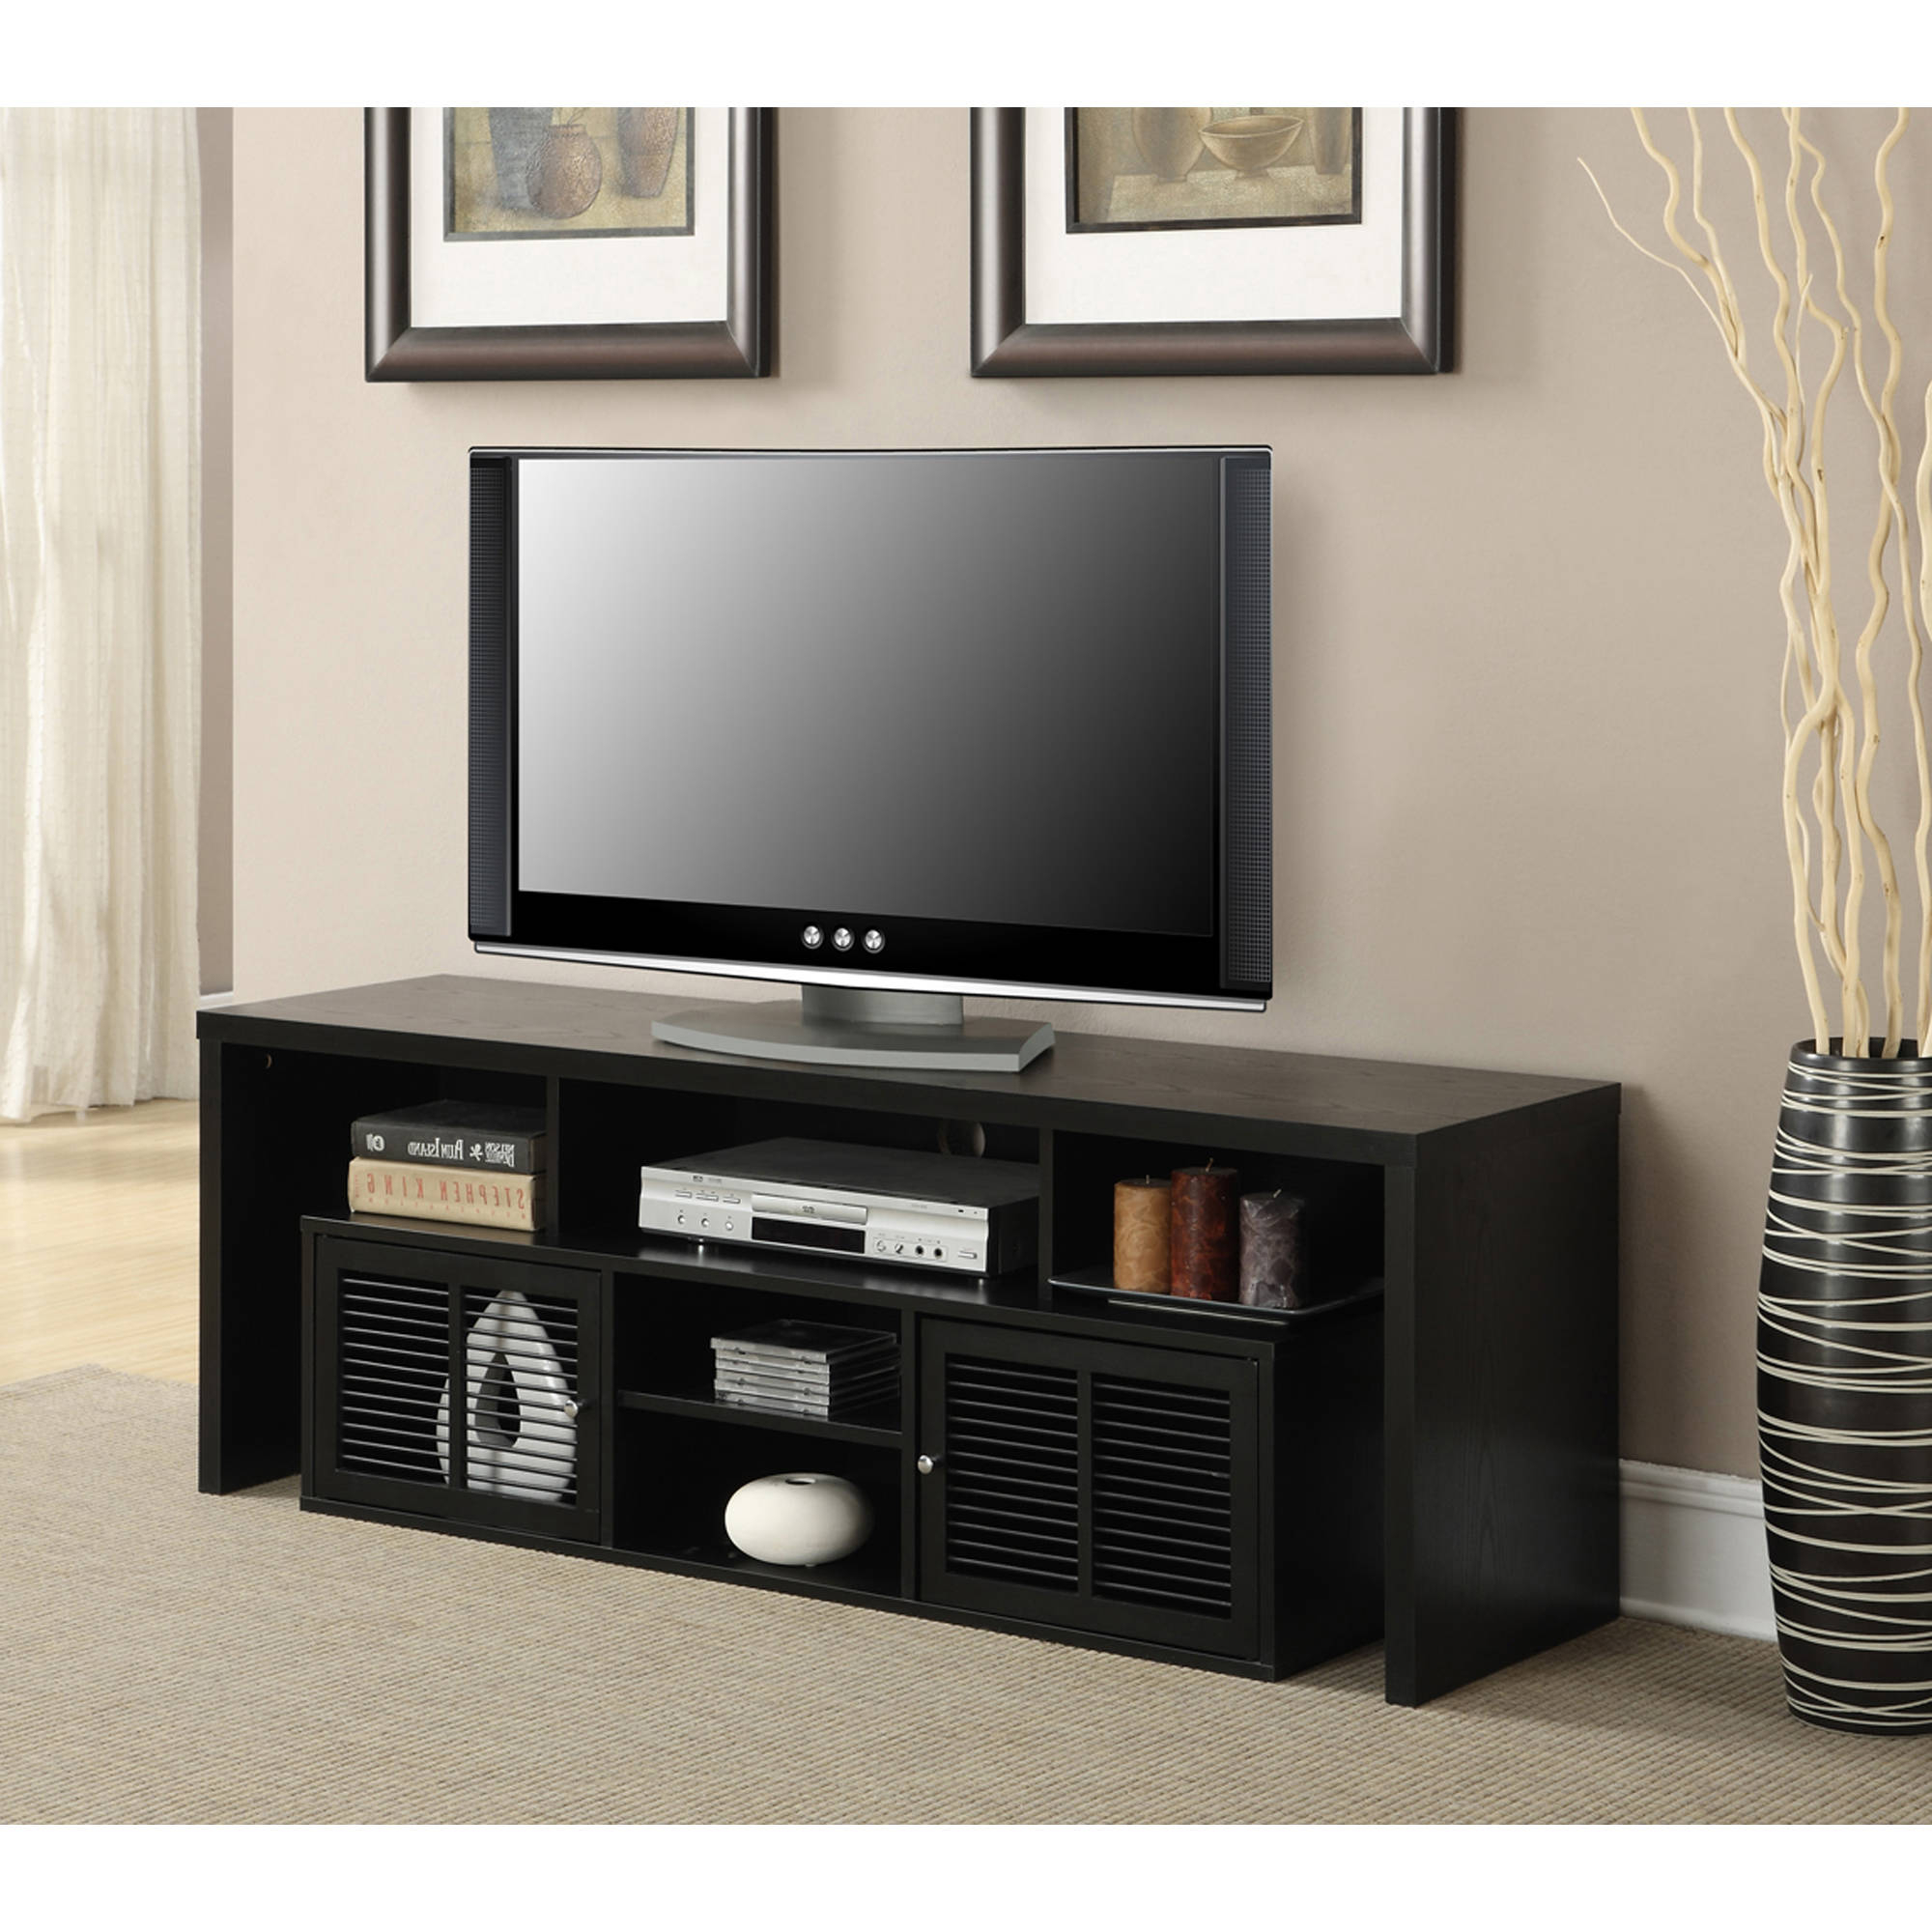 Most Recently Released Tv Cabinet With Doors To Hide Enclosed Wall Cabinets Flat Screens Regarding Modern Tv Cabinets For Flat Screens (View 16 of 20)